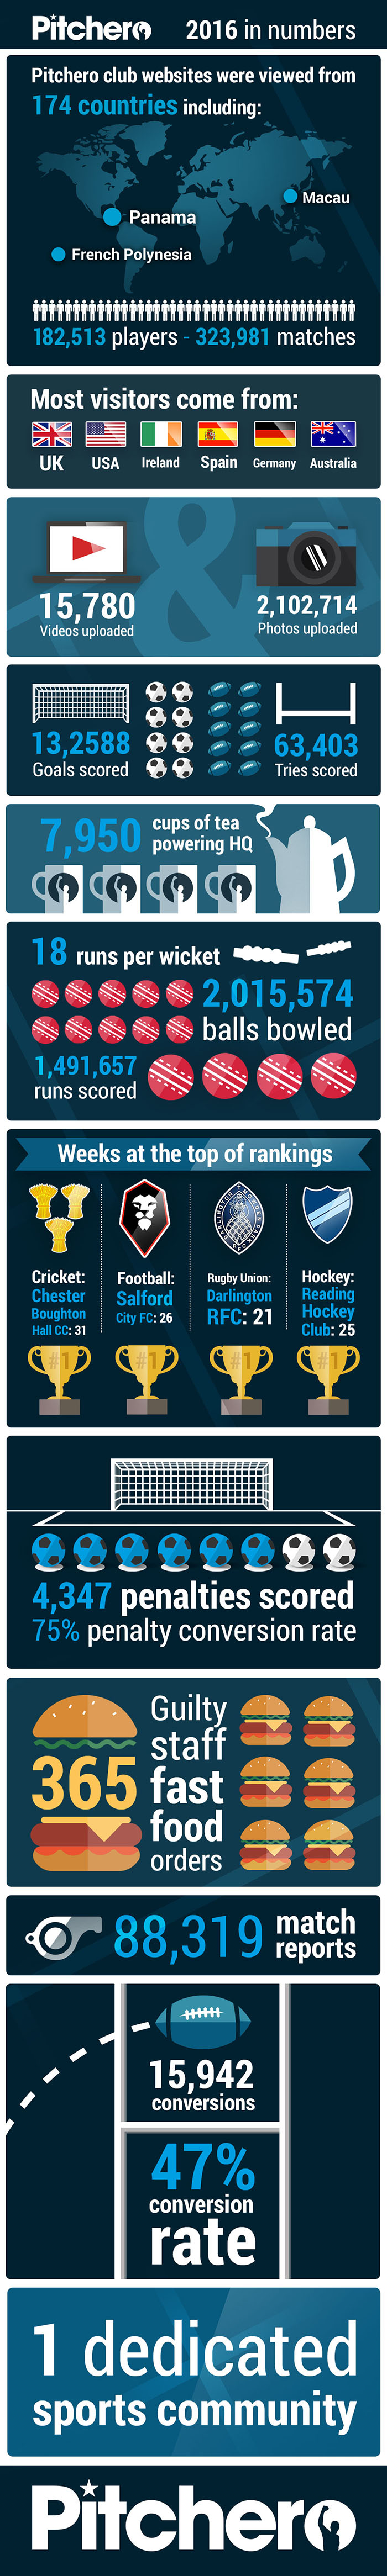 Pitchero 2016 in numbers infographic